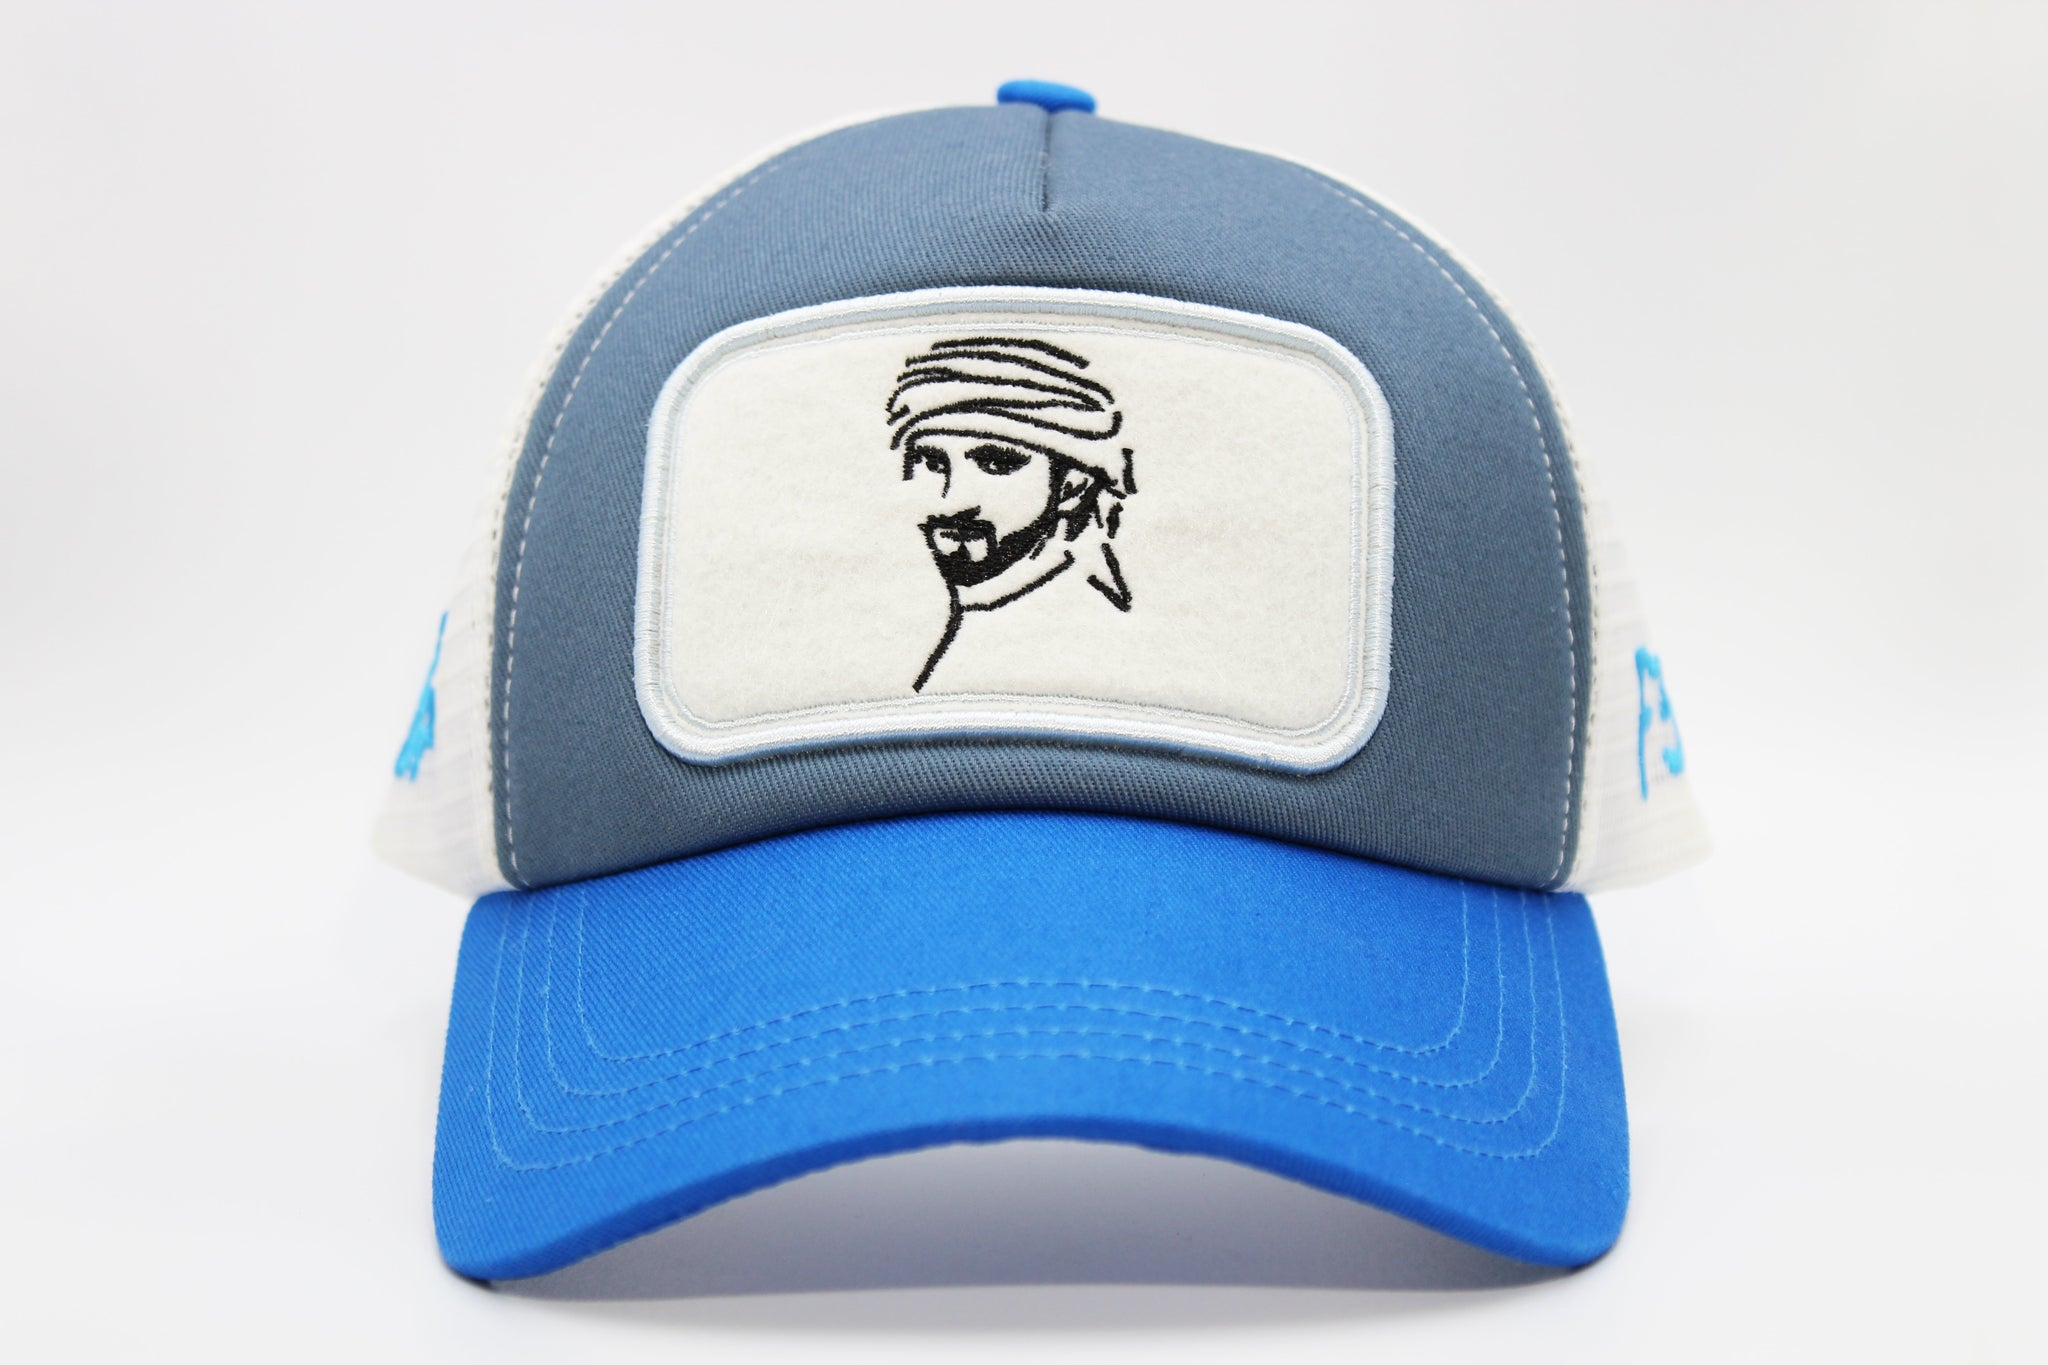 fazza f3 cap blue/white by Foxerz front-side view